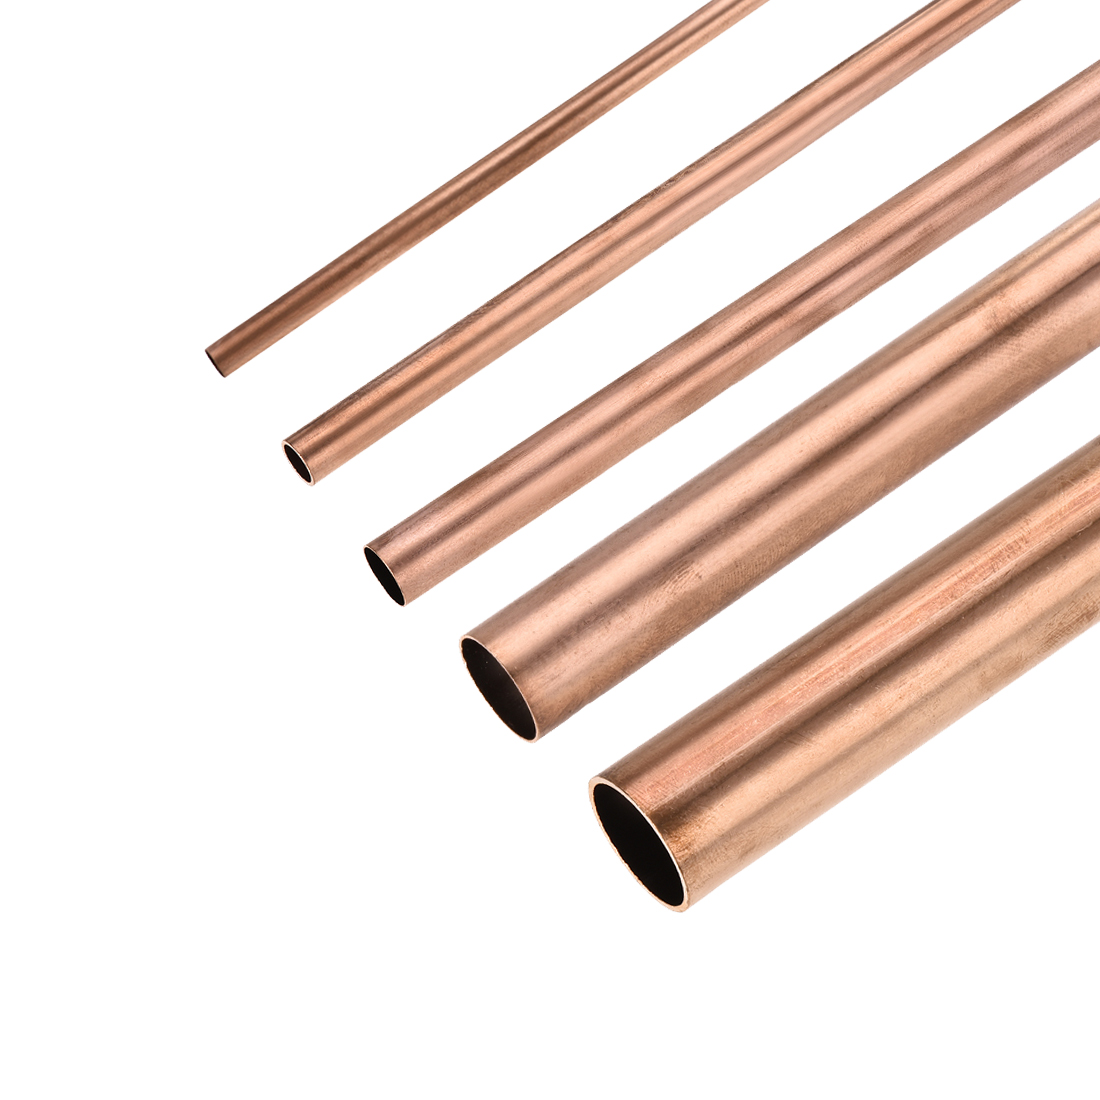 Uxcell 3Pcs Copper Hollow Straight Pipe Tubing 100mm/200mm/300mm Length Round Tube For DIY Crafts